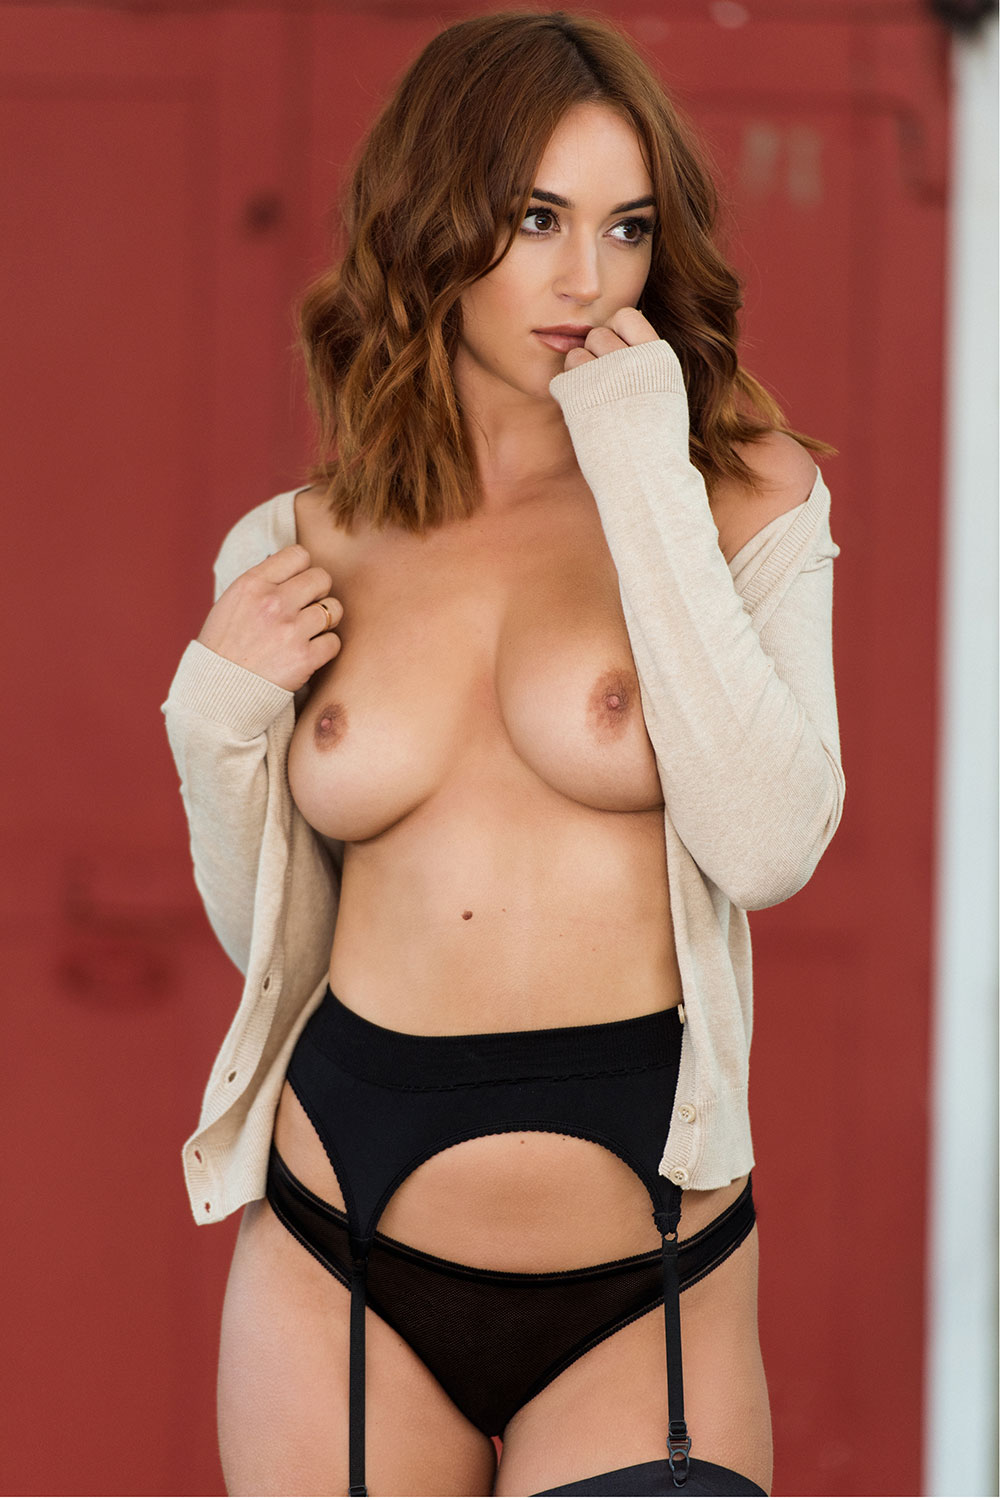 Rosie-Jones-Sexy-Topless-1